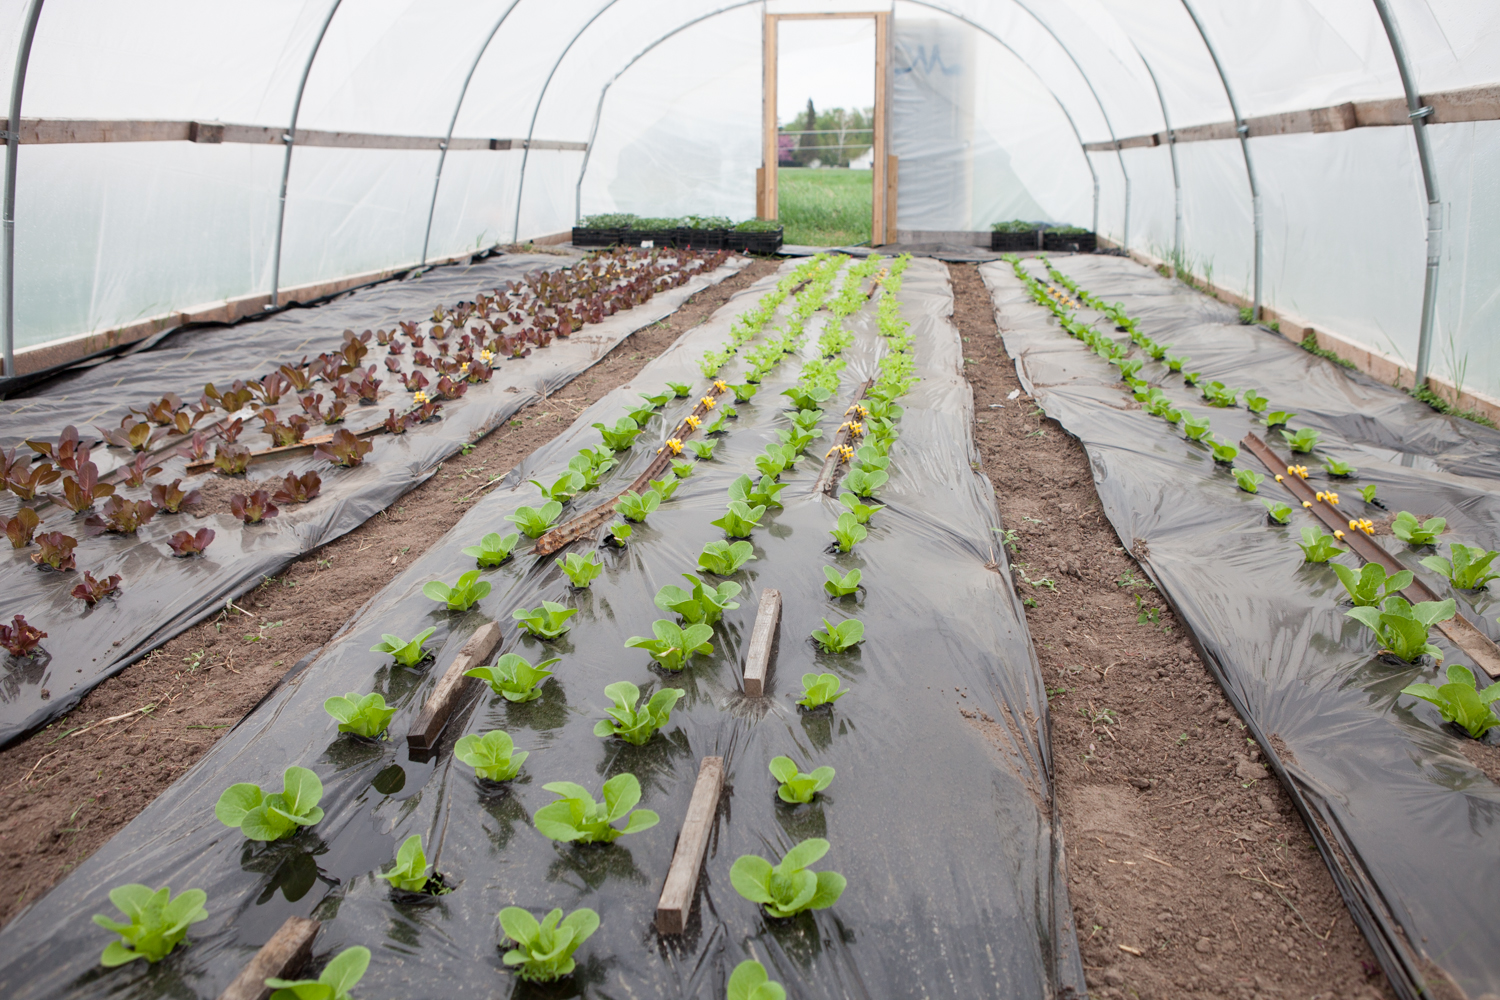 Salad Mix in the Small Hoophouse